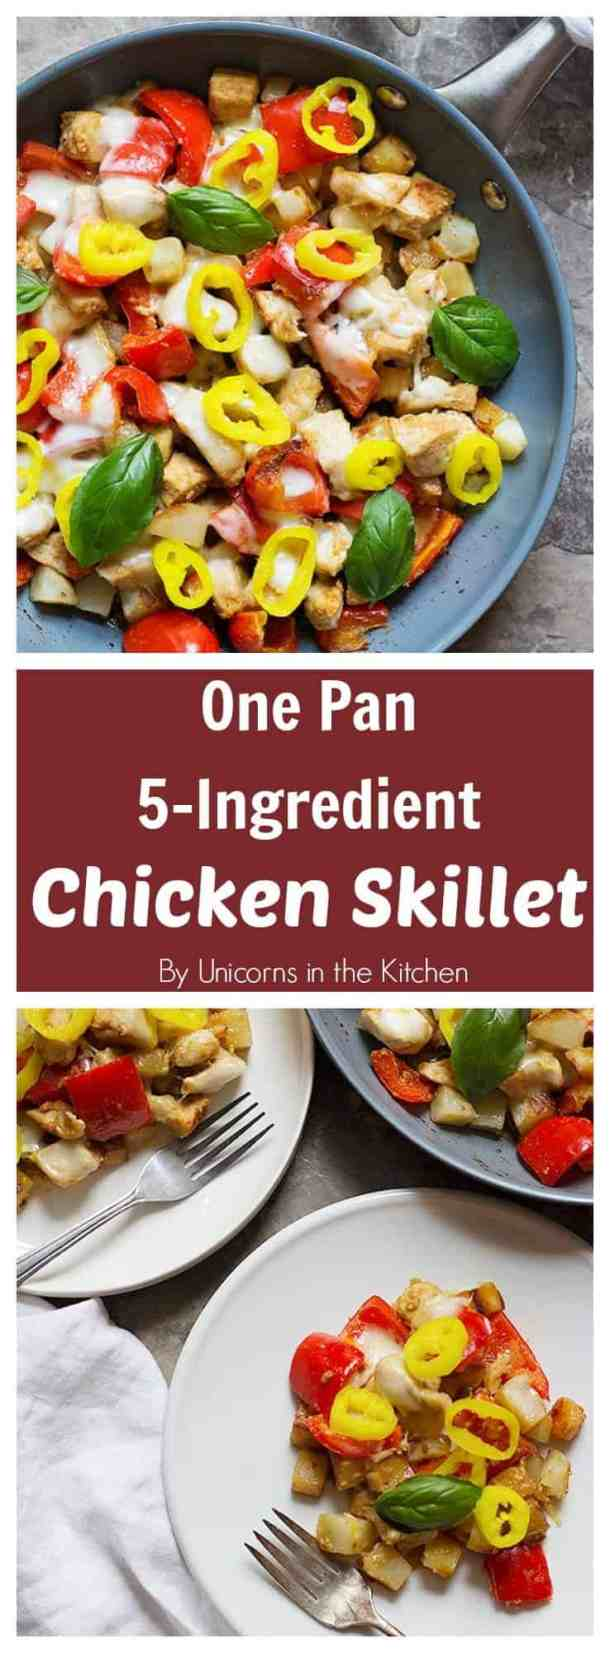 This one pan 5-ingredient chicken skillet is perfect for weeknight dinners as it comes together in 30 minutes. The final addition of pepper rings gives a bold flavor to the dish!